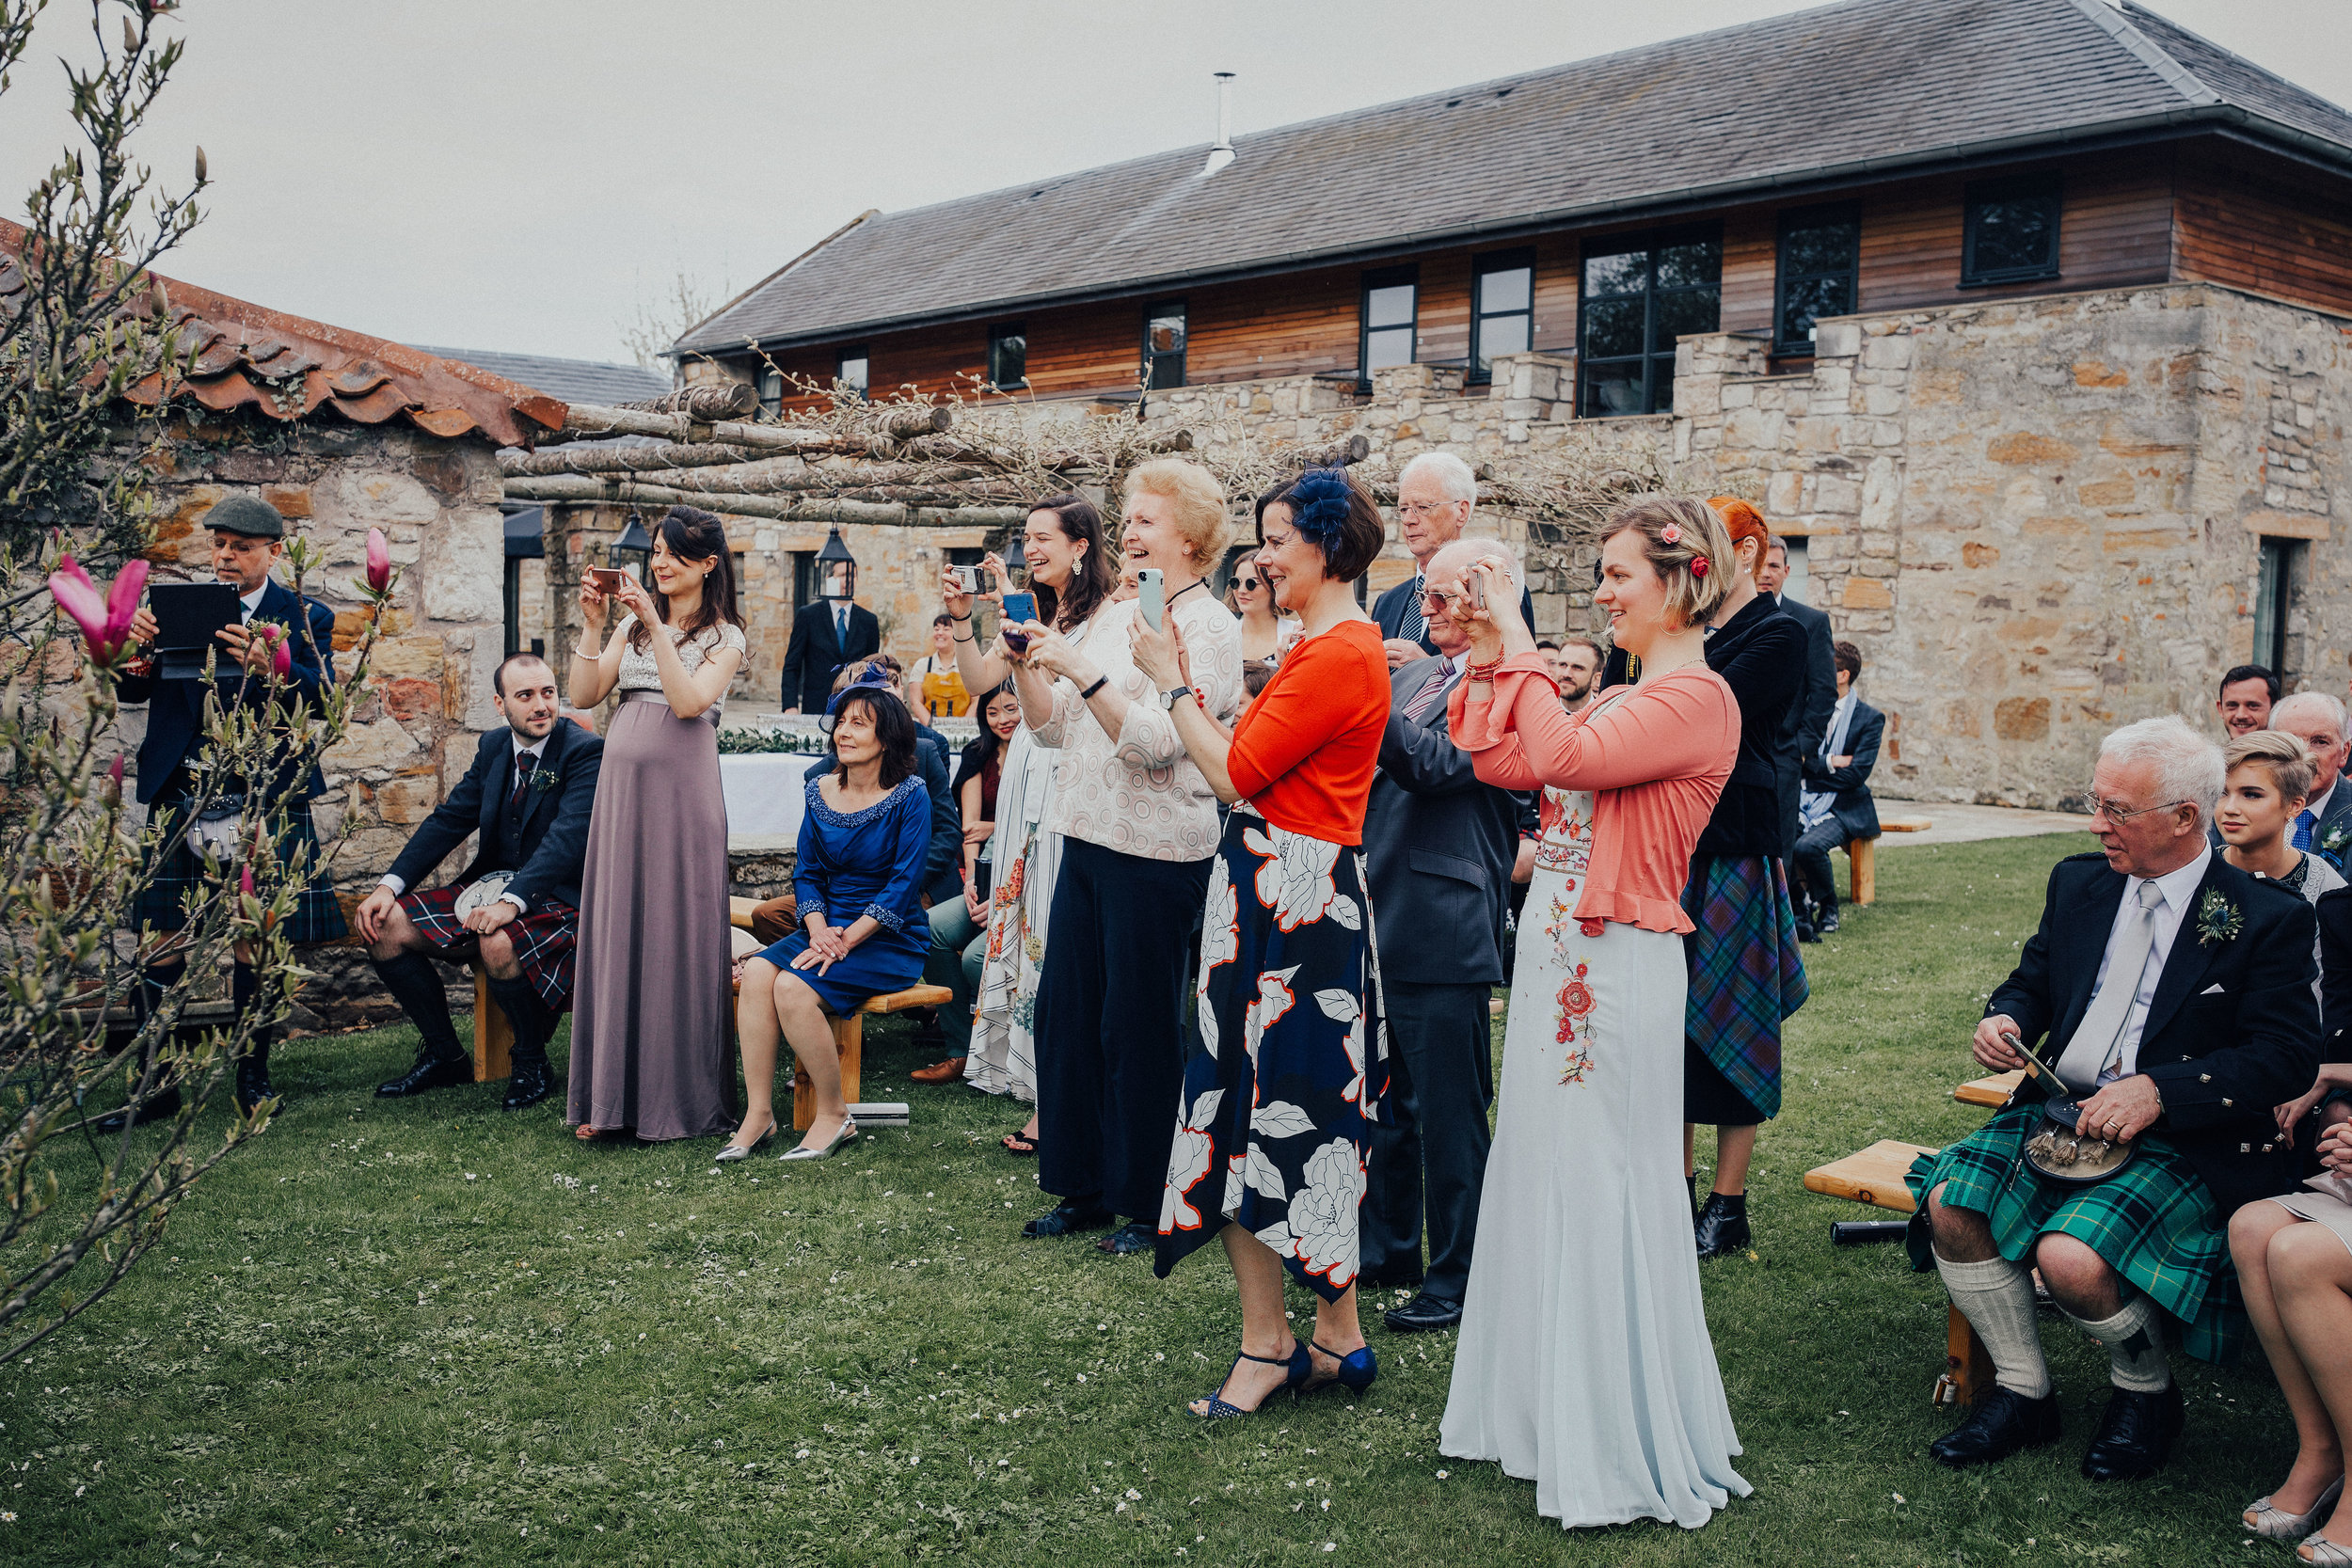 WINDMILL_BARN_DUNFERMLINE_WEDDING_PJ_PHILLIPS_PHOTOGRAPHY_81.jpg